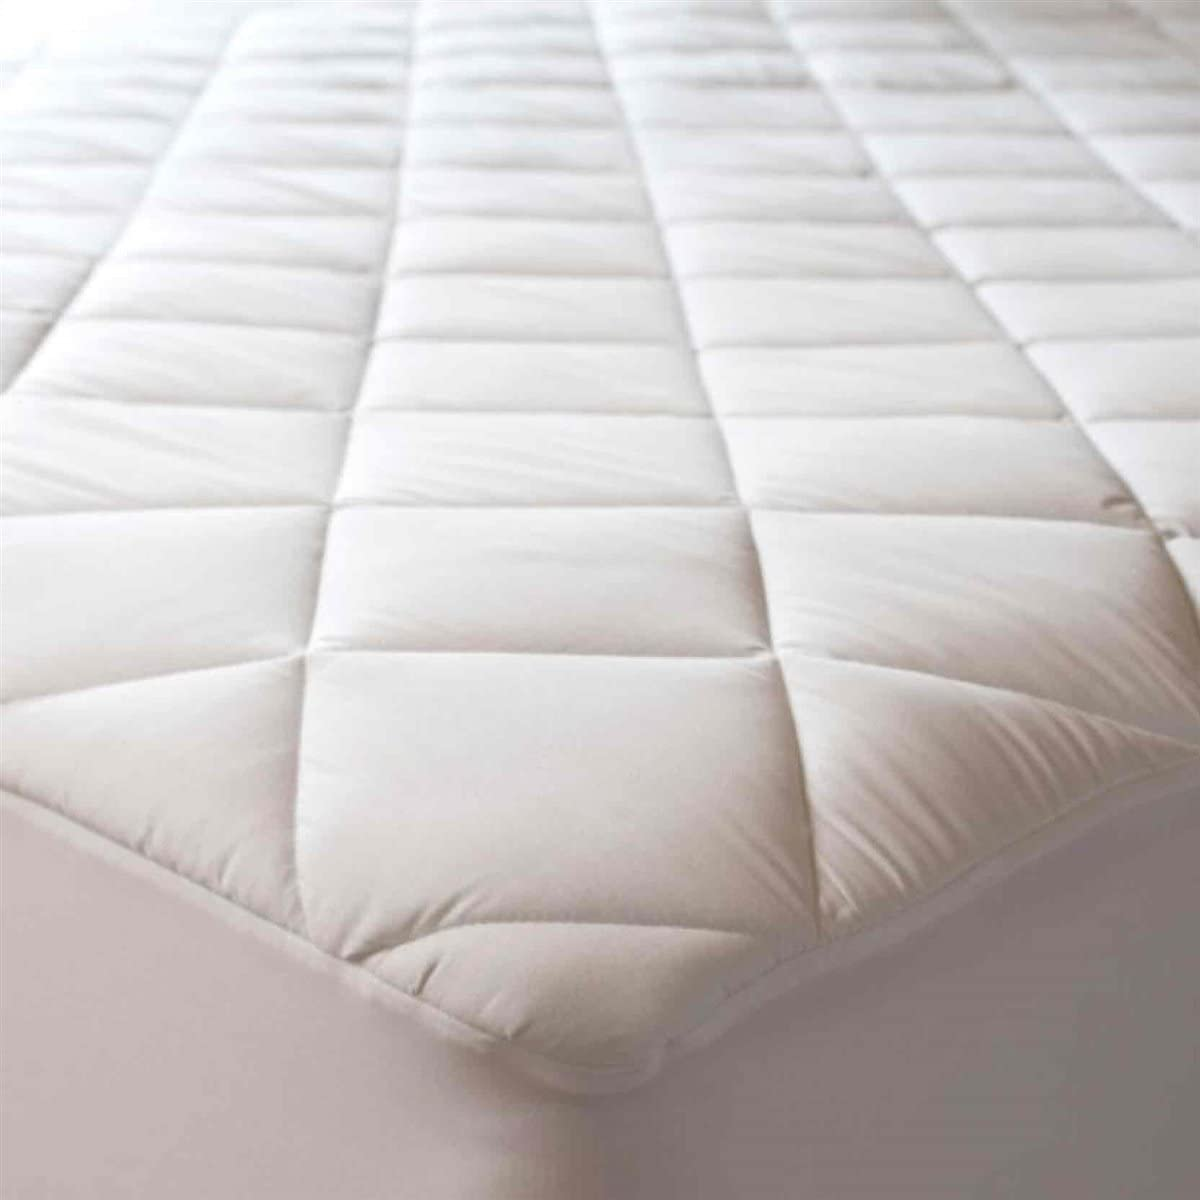 Abstract Quilted Mattress Pad White Fitted Waterproof Cotton Protector Cover 39 x 75 (Twin)